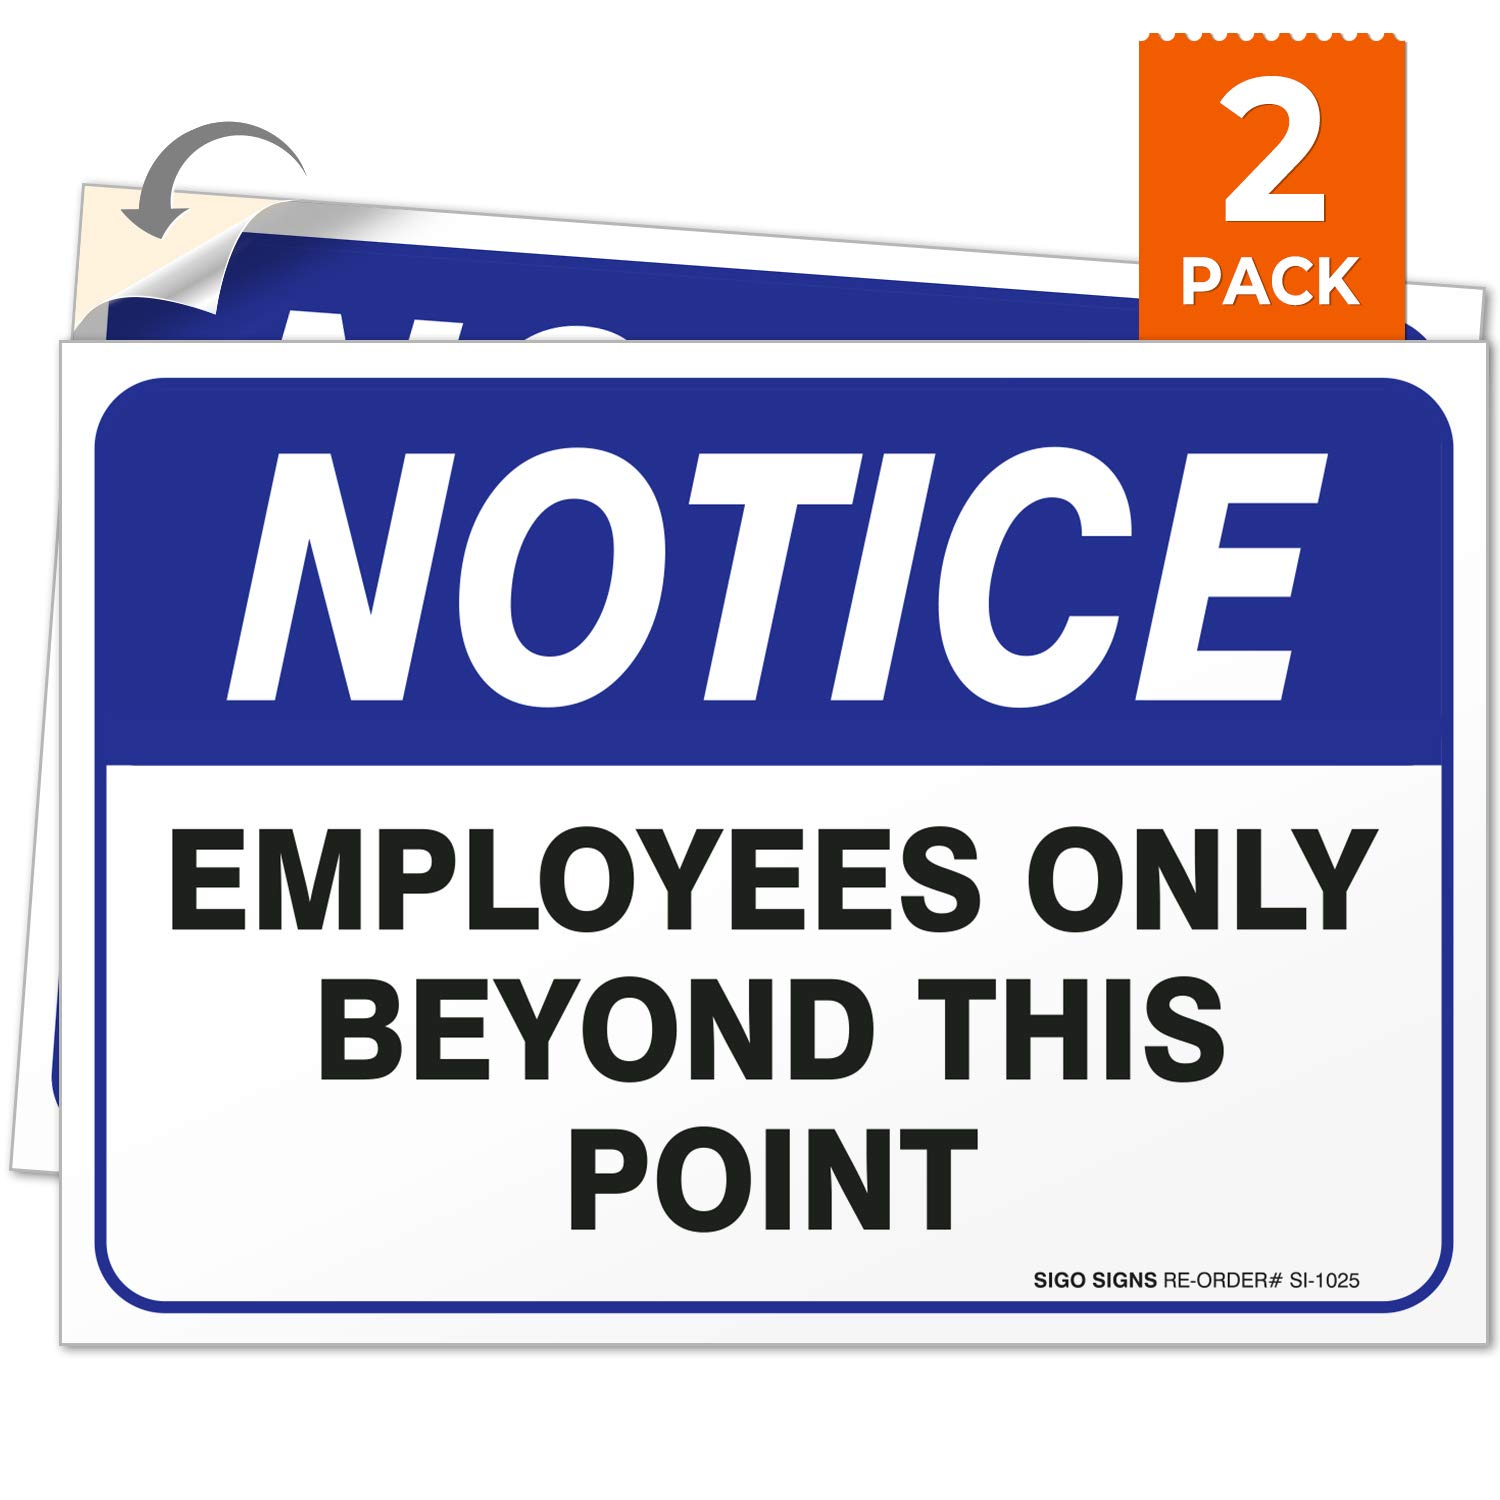 Employees Only Sign, Employees Only Beyond This Point Sign, (2 Pack) 10x7 4 Mil Vinyl Stickers, Weatherproof and UV Protected, Made in USA